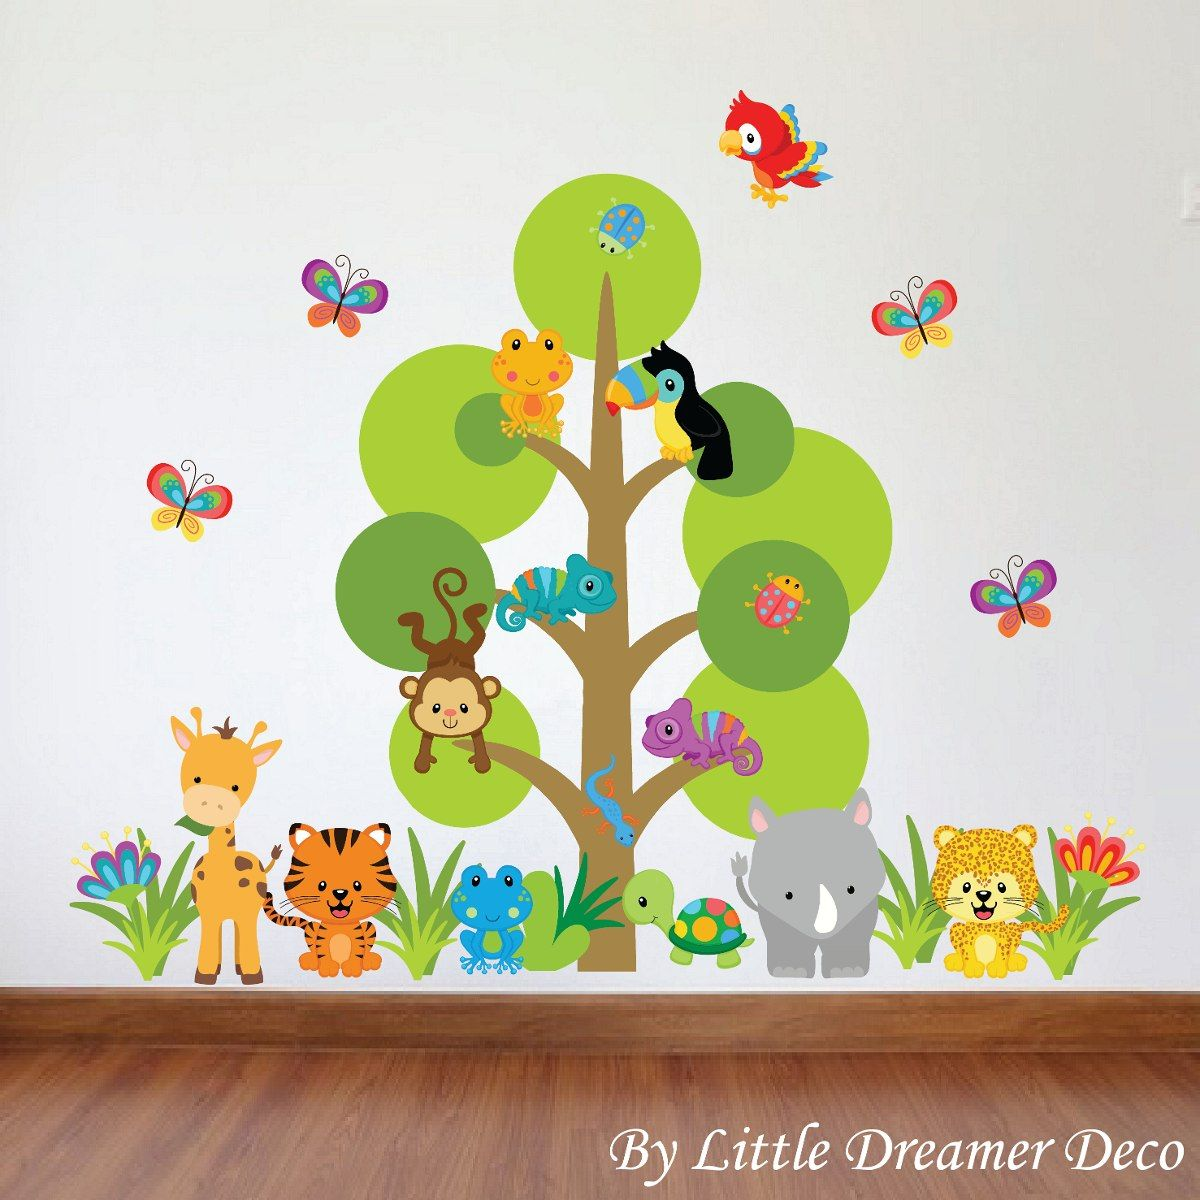 Dise os infantiles de animales buscar con google for Vinilos decorativos pared ninos